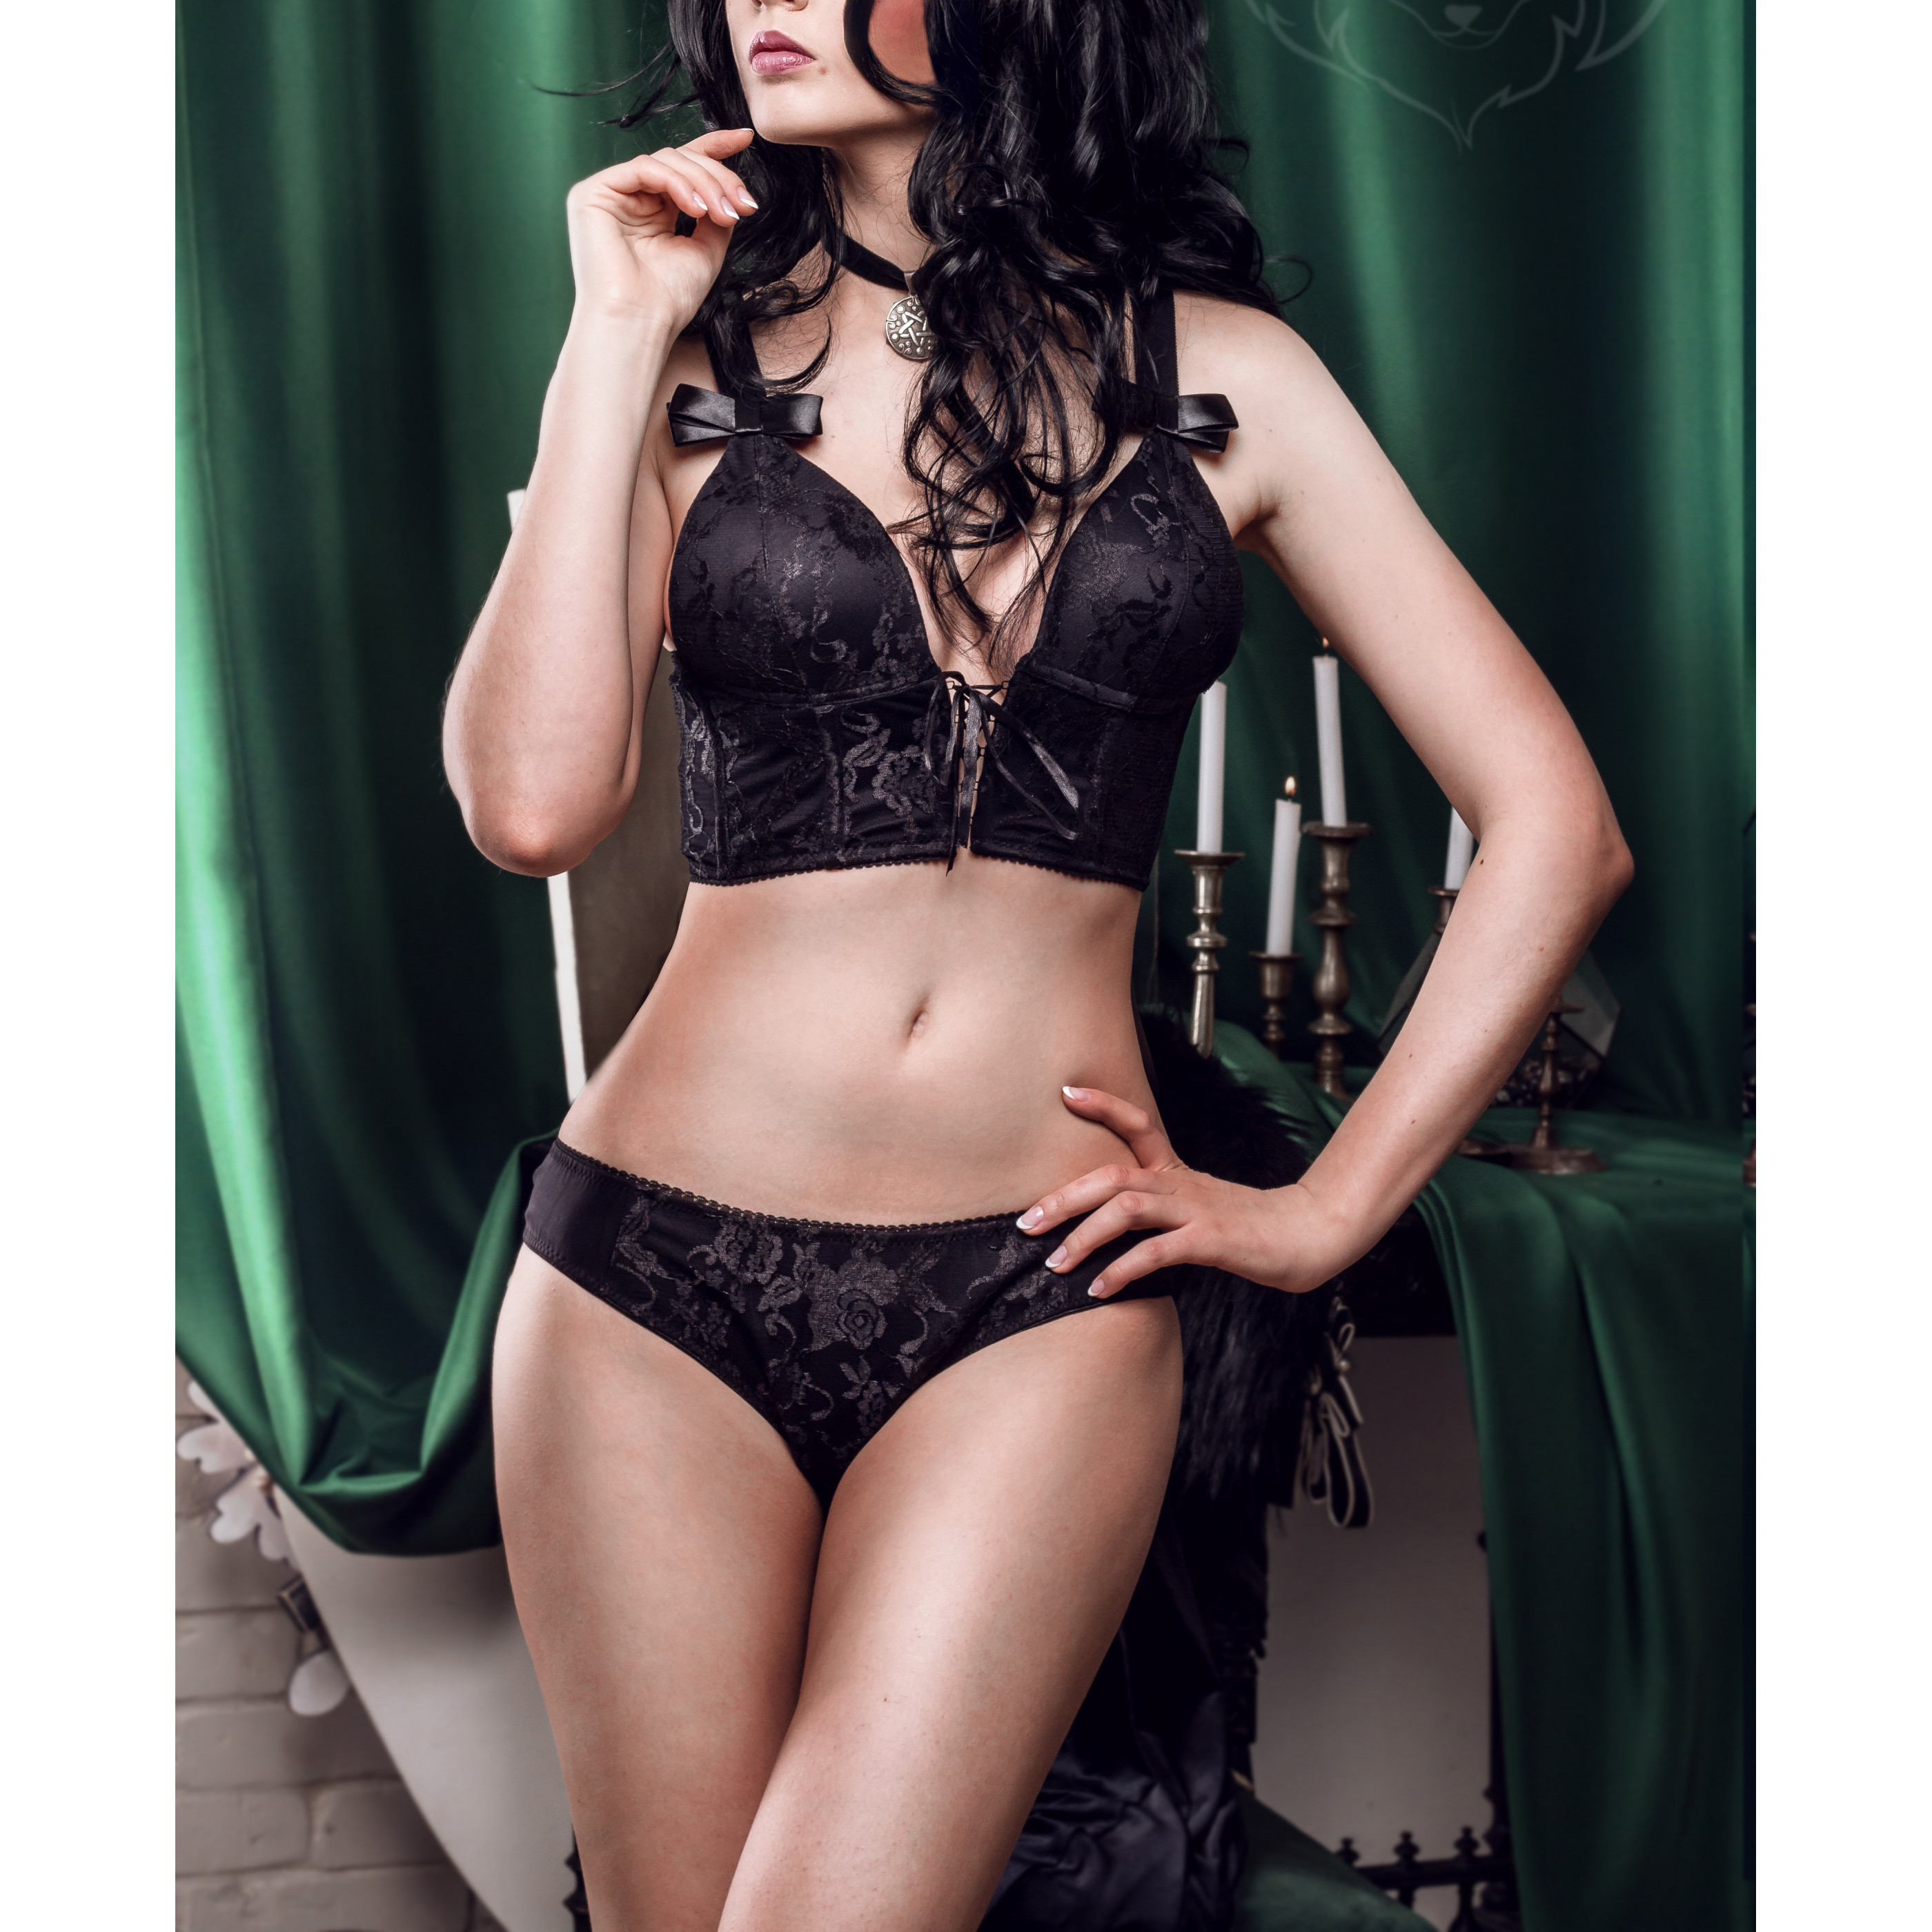 FENINDOM The Witcher 3: Wild Hunt Yennefer Of Vengerberg Lingerie